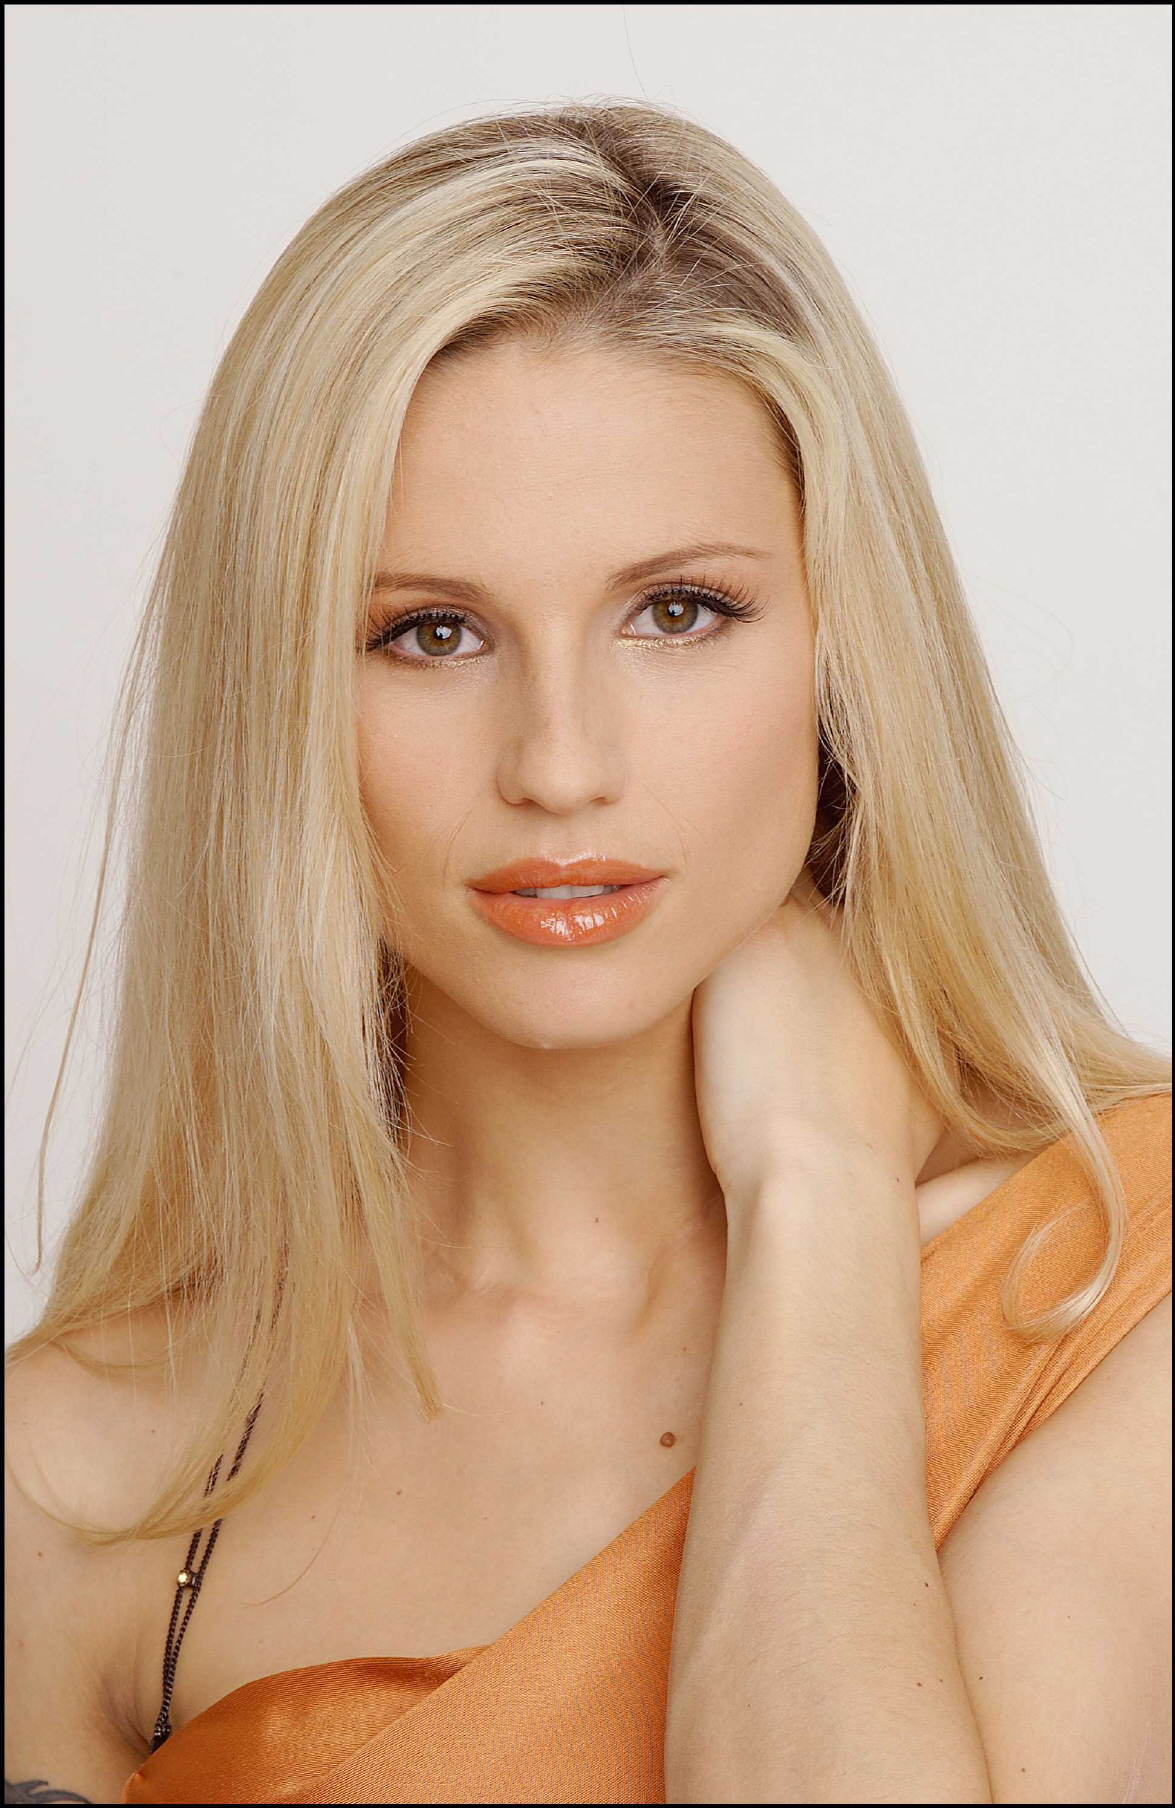 Michelle Hunziker photo gallery - 156 high quality pics of